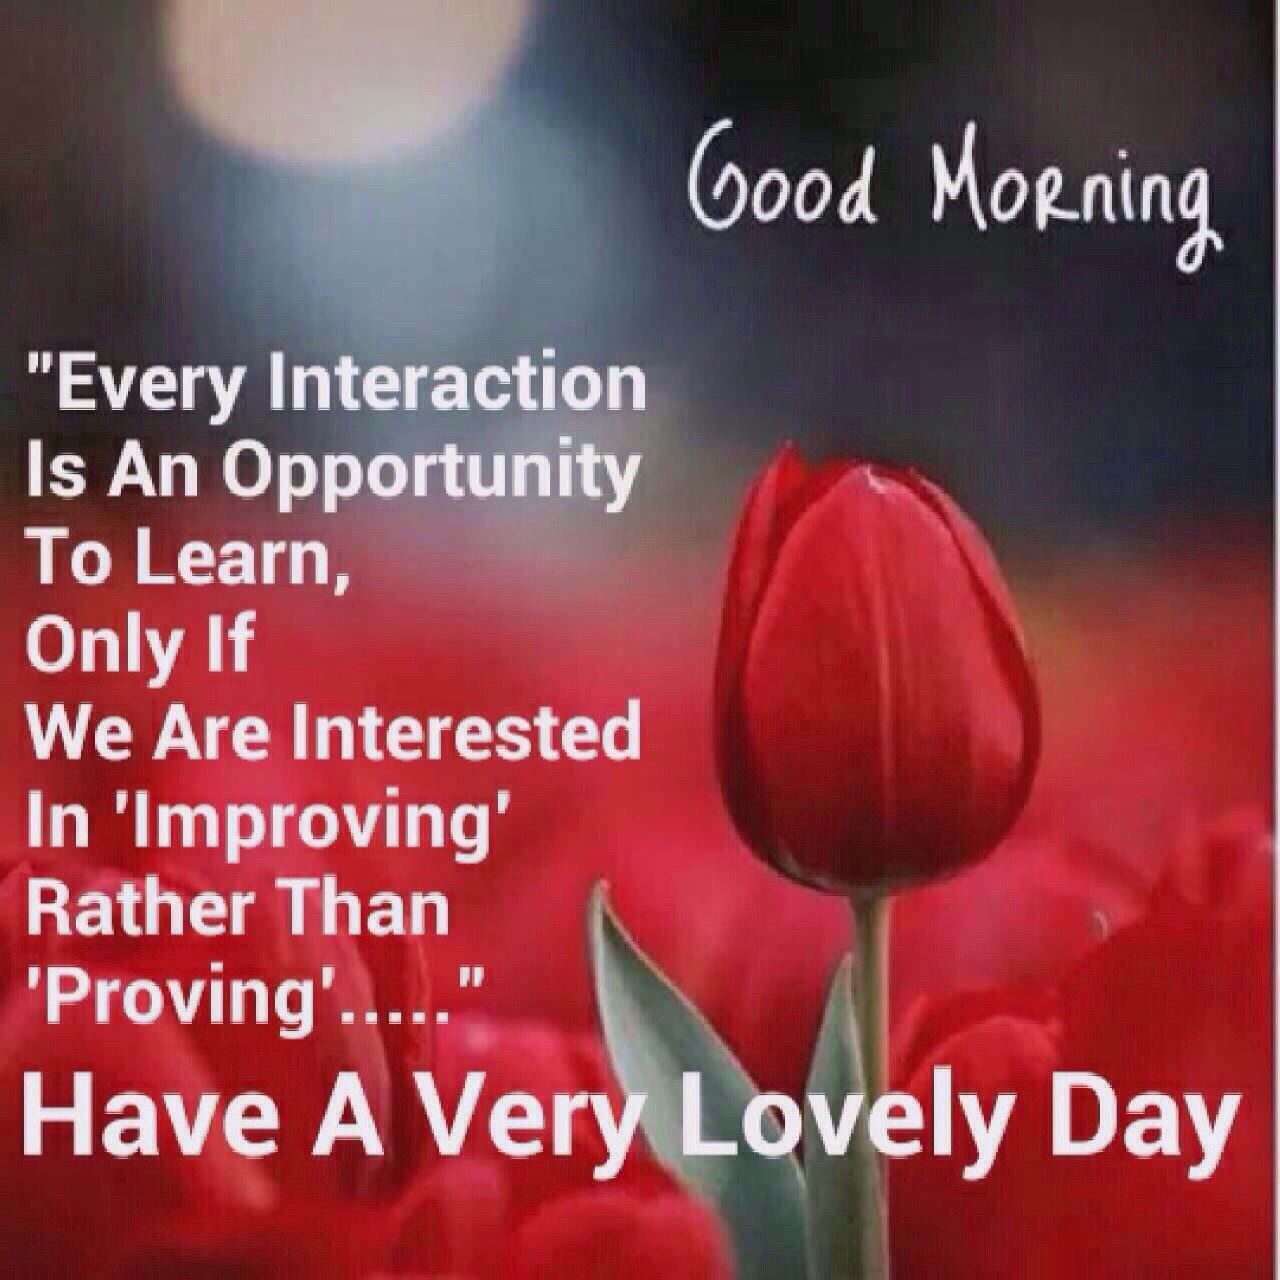 Have a lovely day - Whatsapp Forwards, Jokes, Riddles and